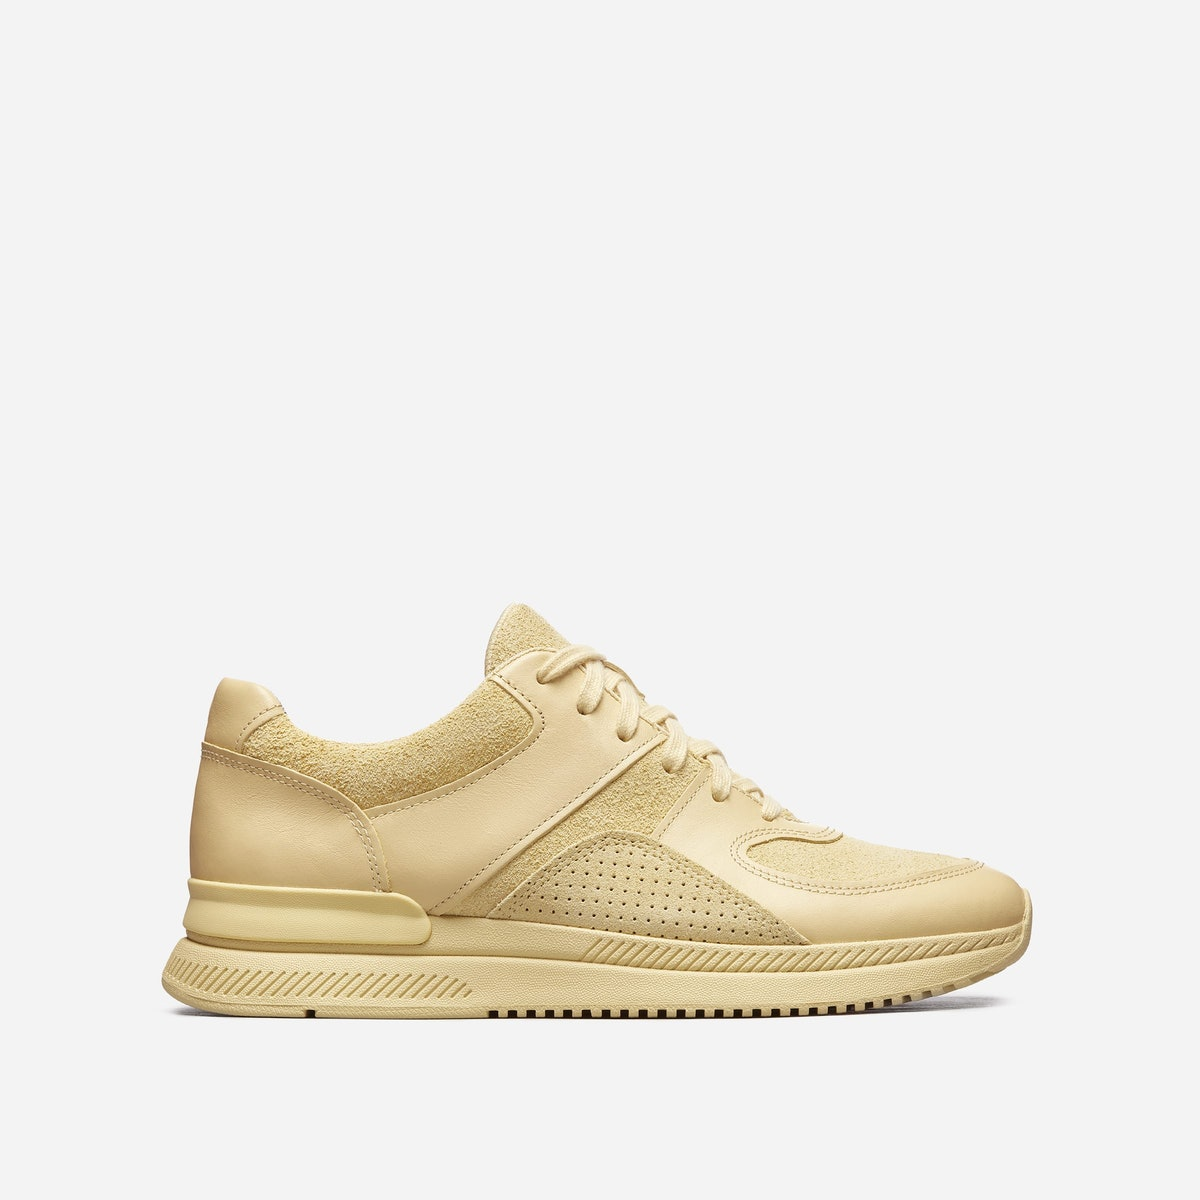 The Trainer in Butter